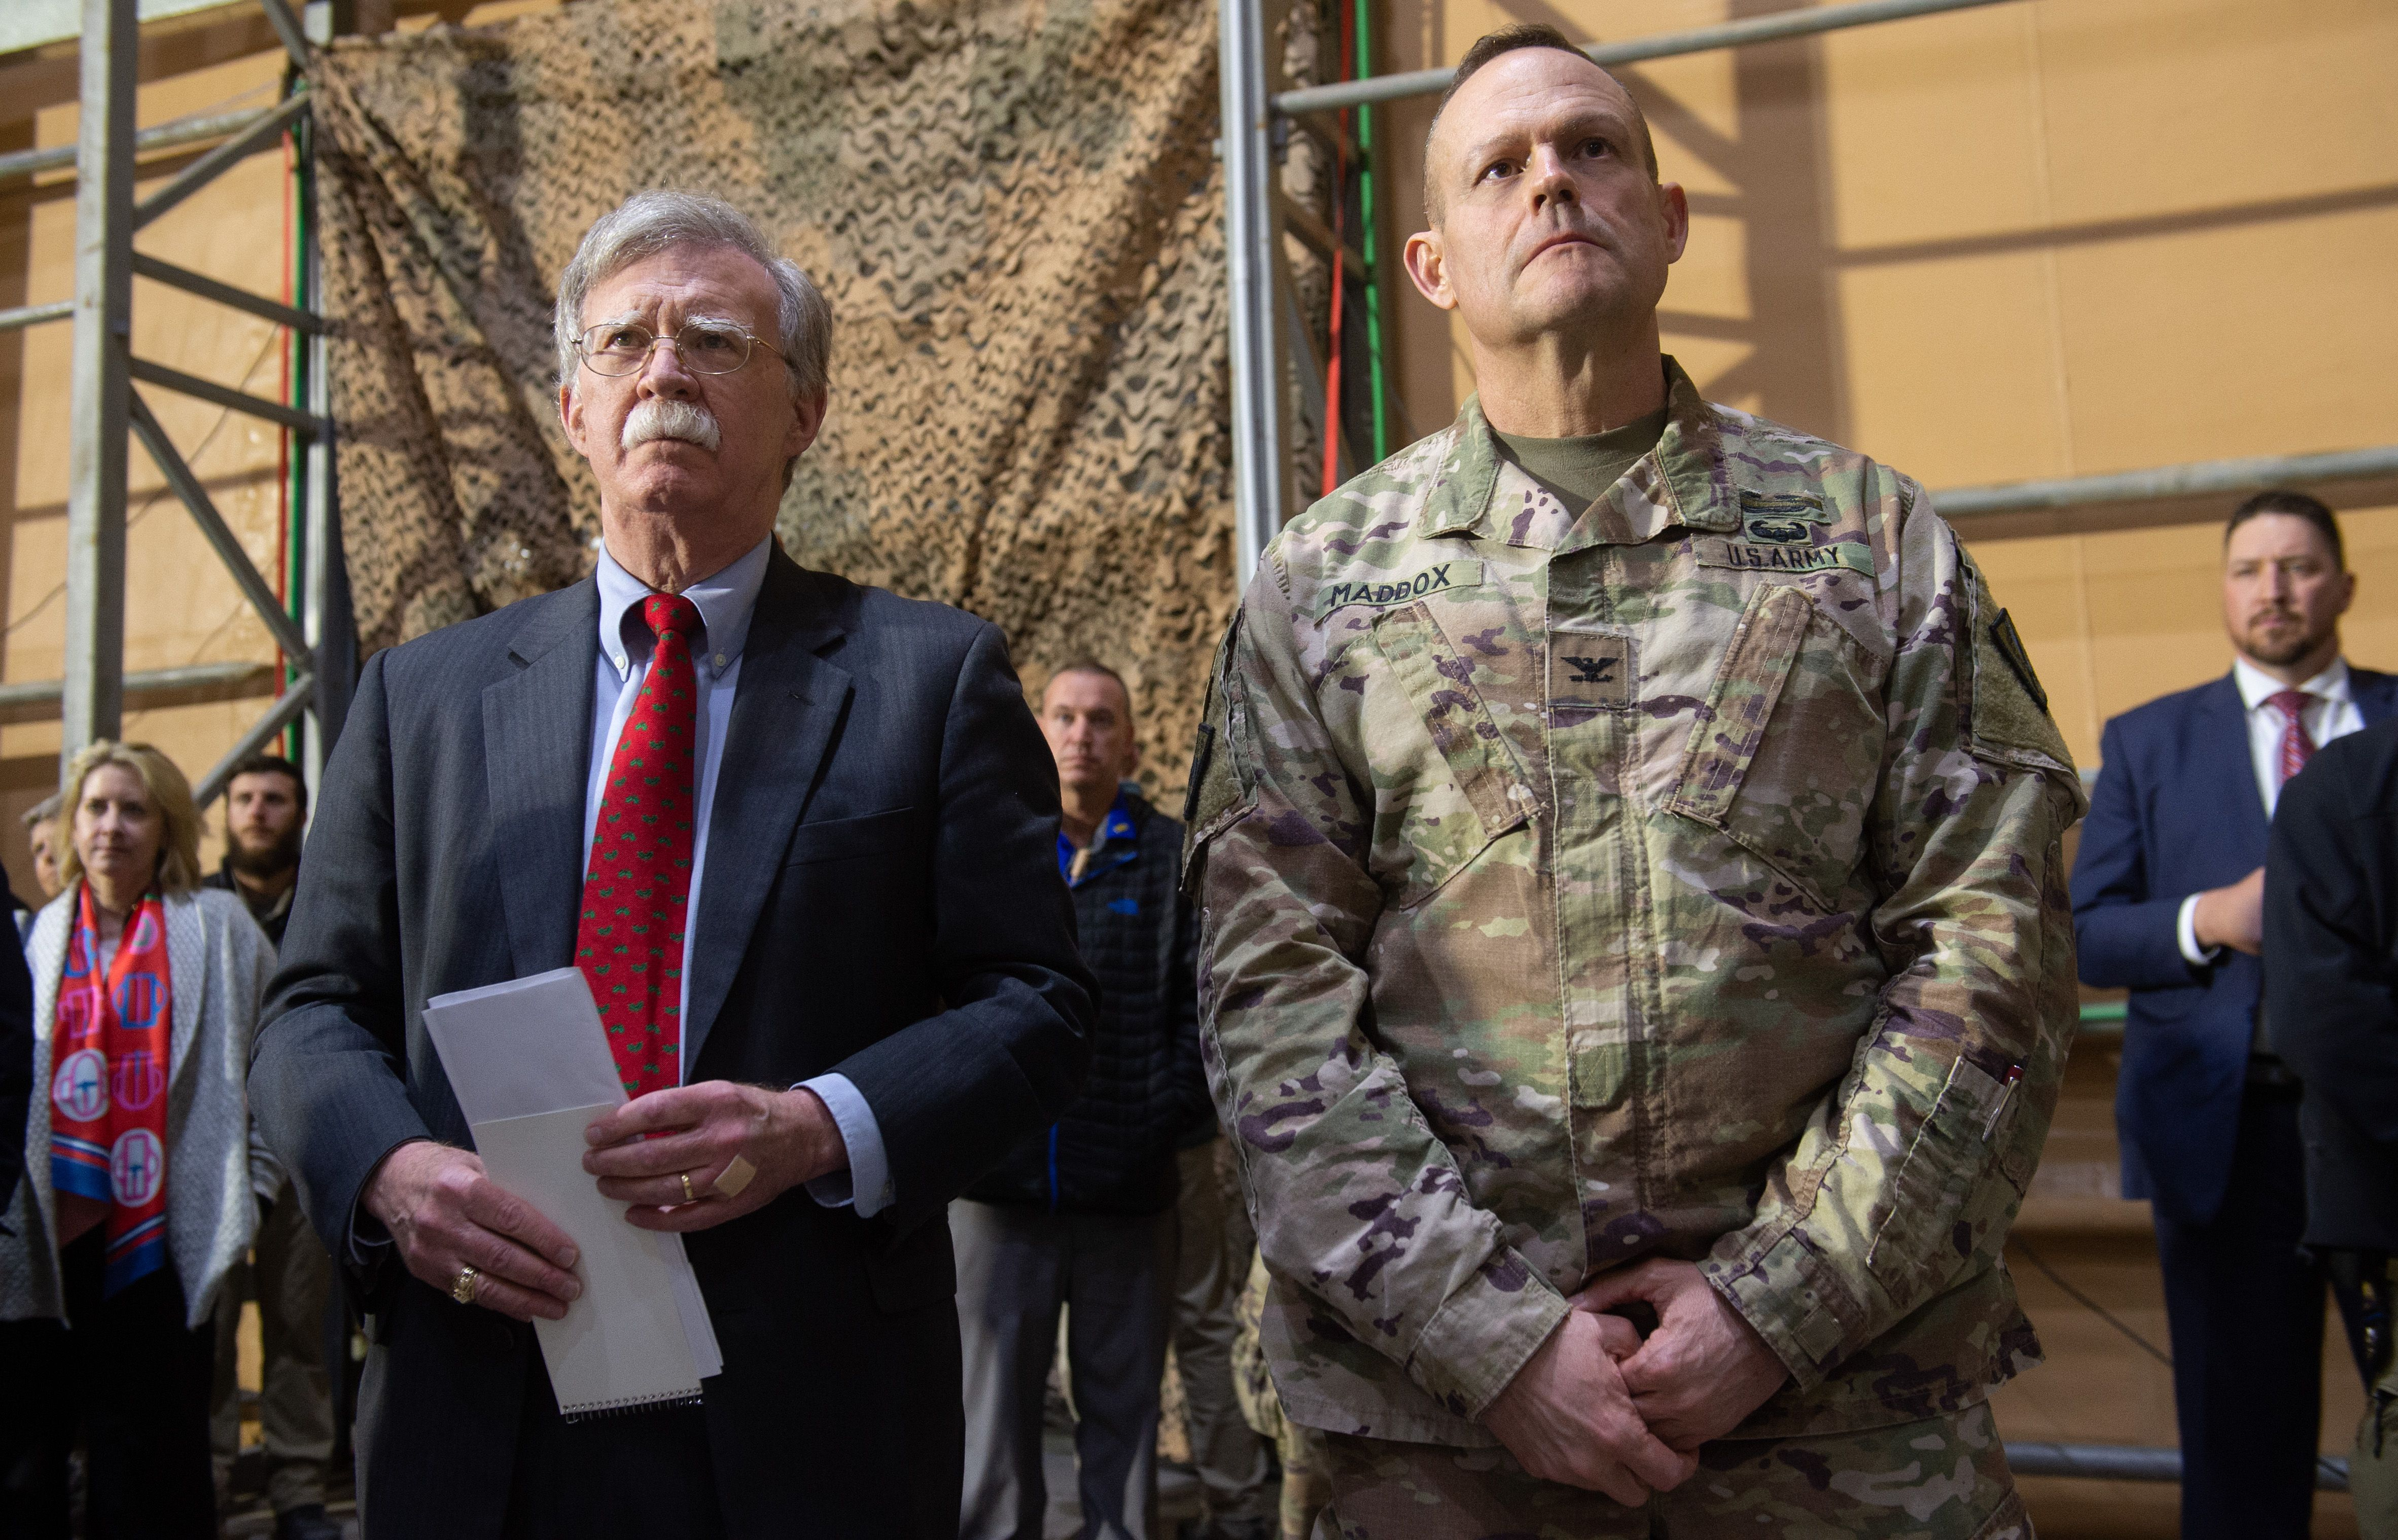 US National Security Adviser John Bolton (L) listens as US President Donald Trump speaks to members of the US military during an unannounced trip to Al Asad Air Base in Iraq on December 26, 2018. - President Donald Trump arrived in Iraq on his first visit to US troops deployed in a war zone since his election two years ago. SAUL LOEB/AFP/Getty Images